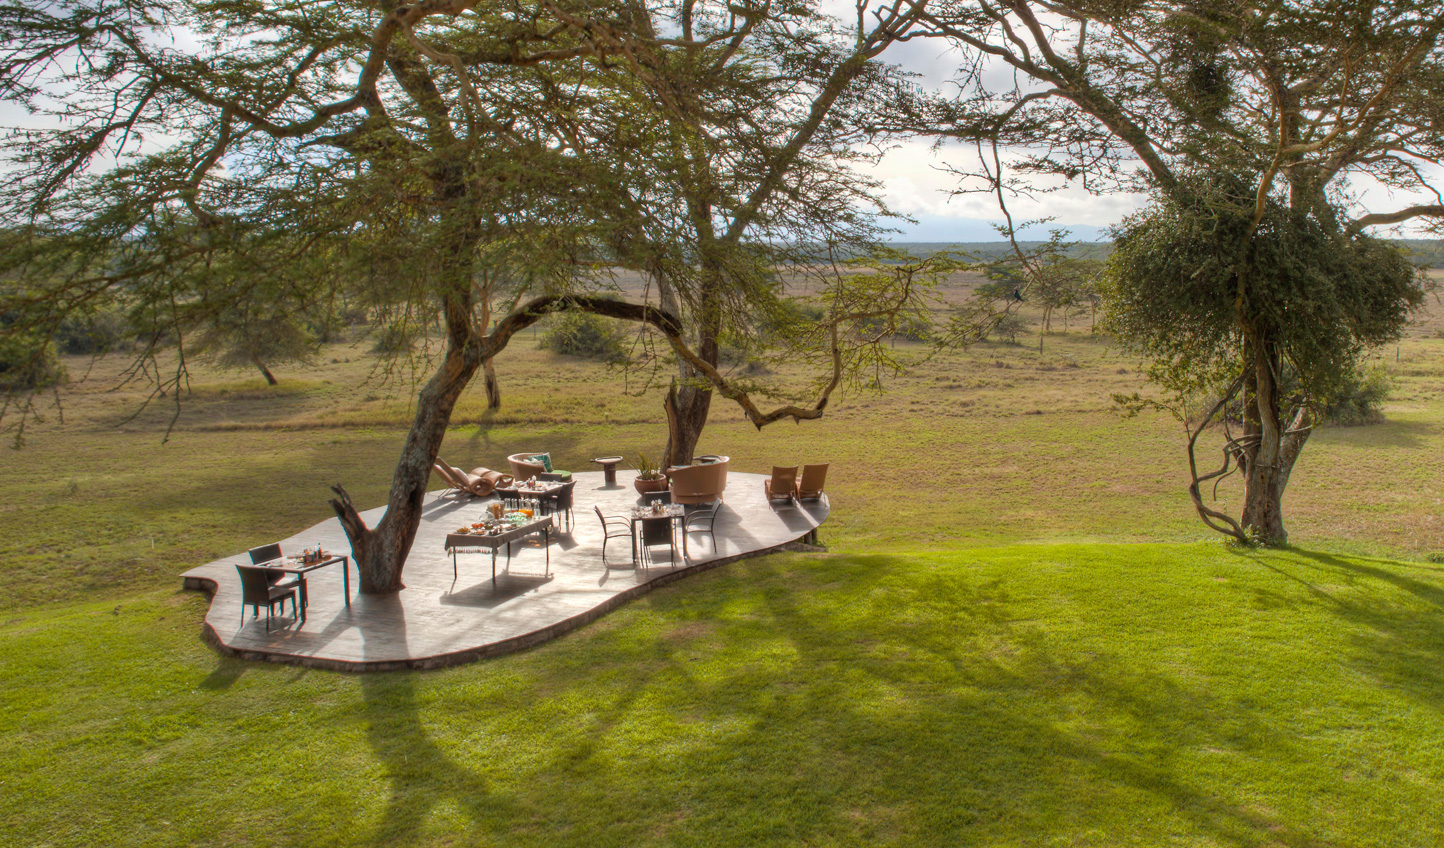 Dine with a view at Solio Lodge